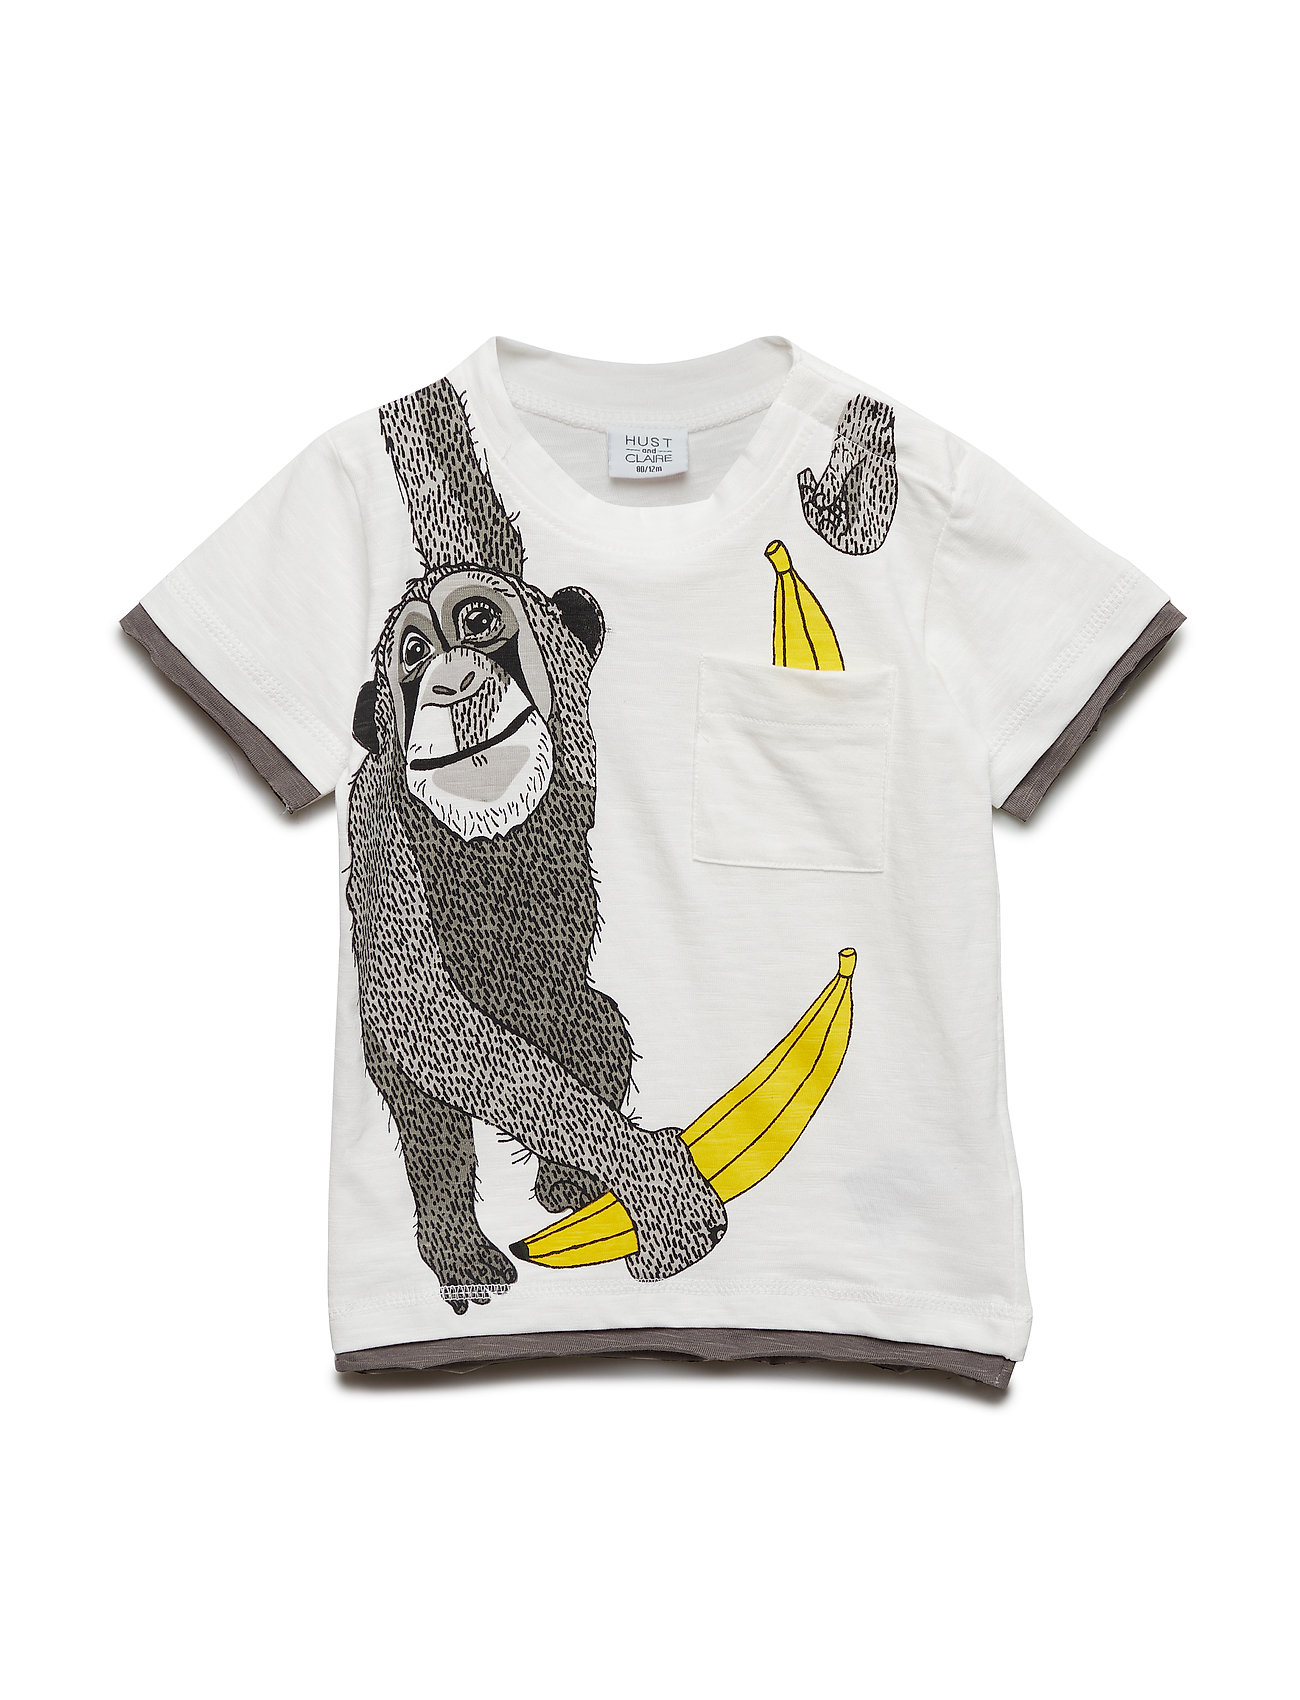 Hust & Claire Ask - T-shirt s/s - IVORY